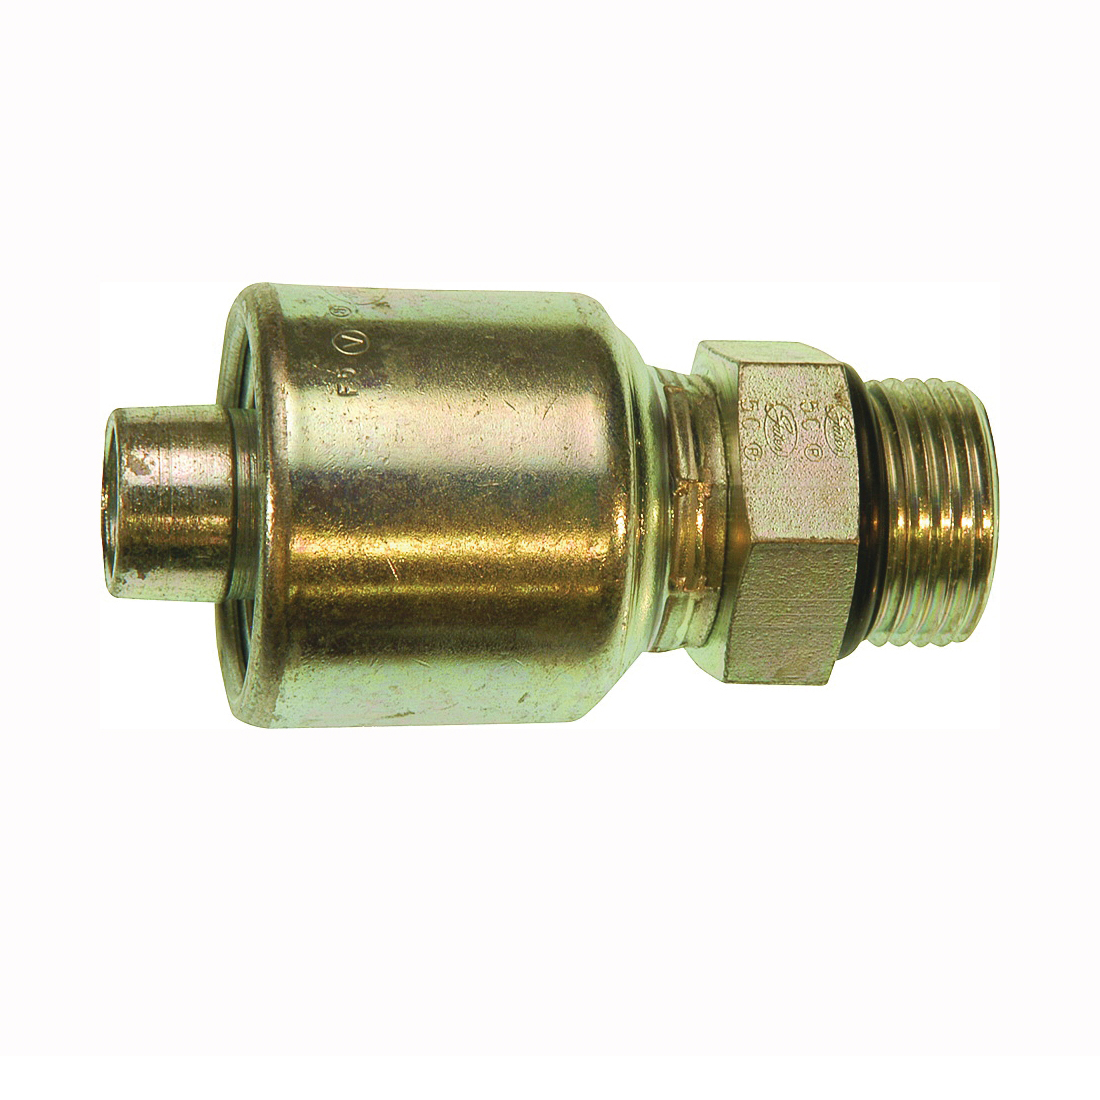 Picture of GATES MegaCrimp G25120-0810 Hose Coupling, 7/8-14, Crimp x ORB, Straight Angle, Steel, Zinc